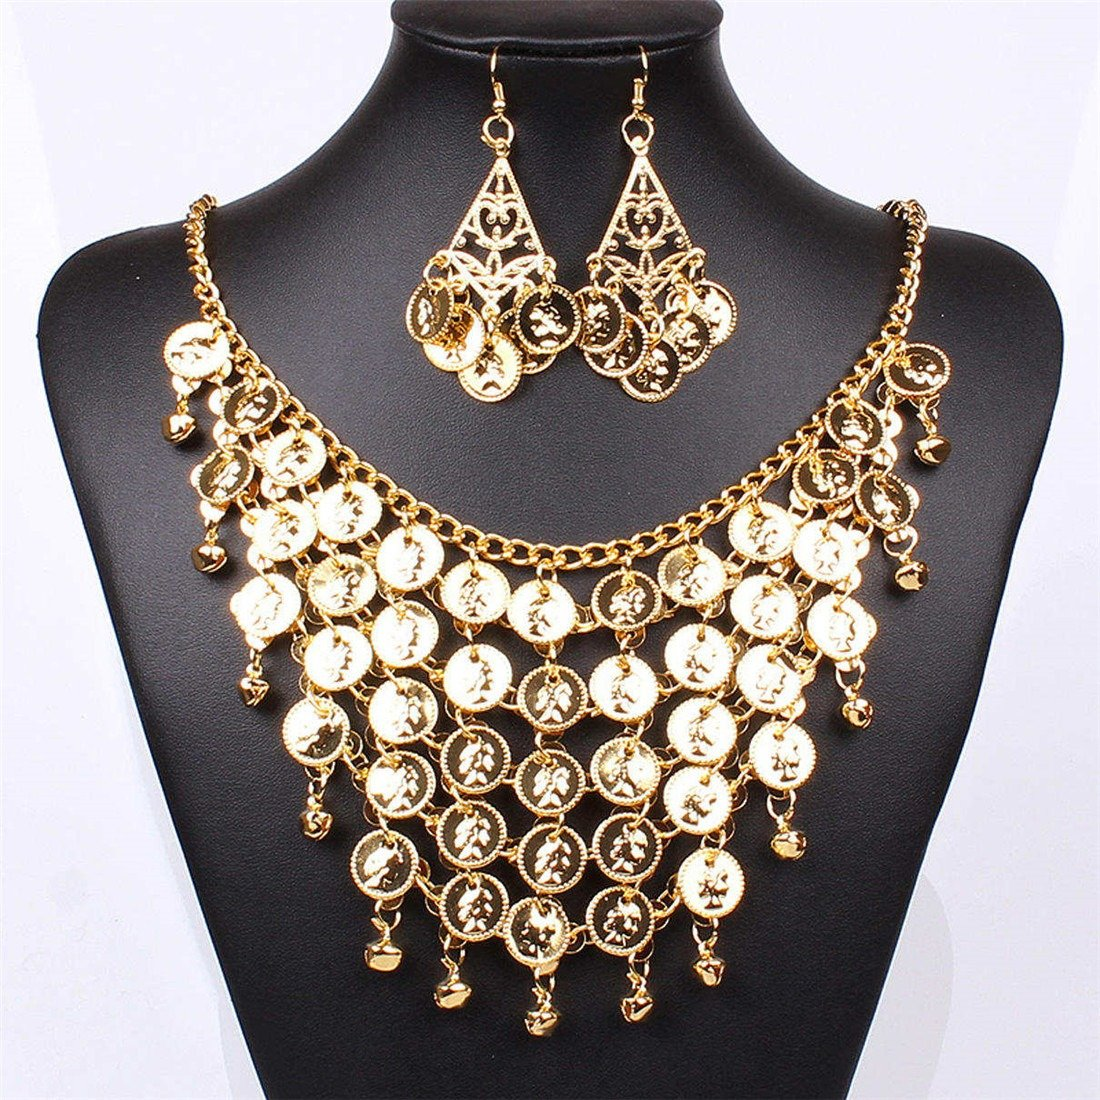 Qiyun Gold Beautiful Earrings Gold Chain Small Bell Bling Necklace Set Or D'Or Cloche Bling Collier W005N1518